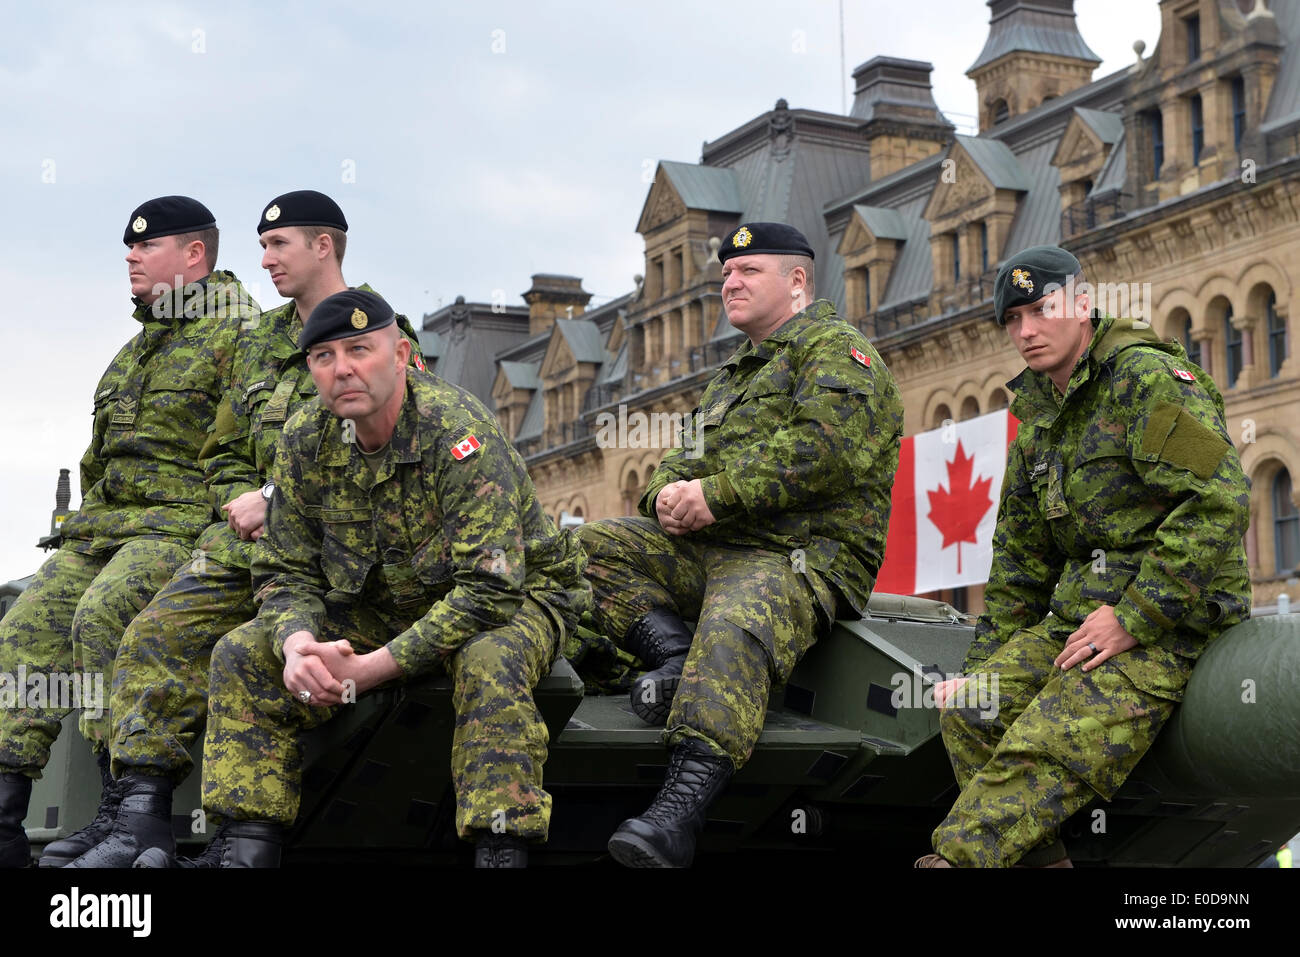 Ottawa, Canada. 09th May, 2014. Soldiers who served in the Canadian Forces in Afghanistan were honored on Parliament Hill during national Day of Honour May 9, 2014 in Ottawa, Canada Credit:  Paul McKinnon/Alamy Live News - Stock Image